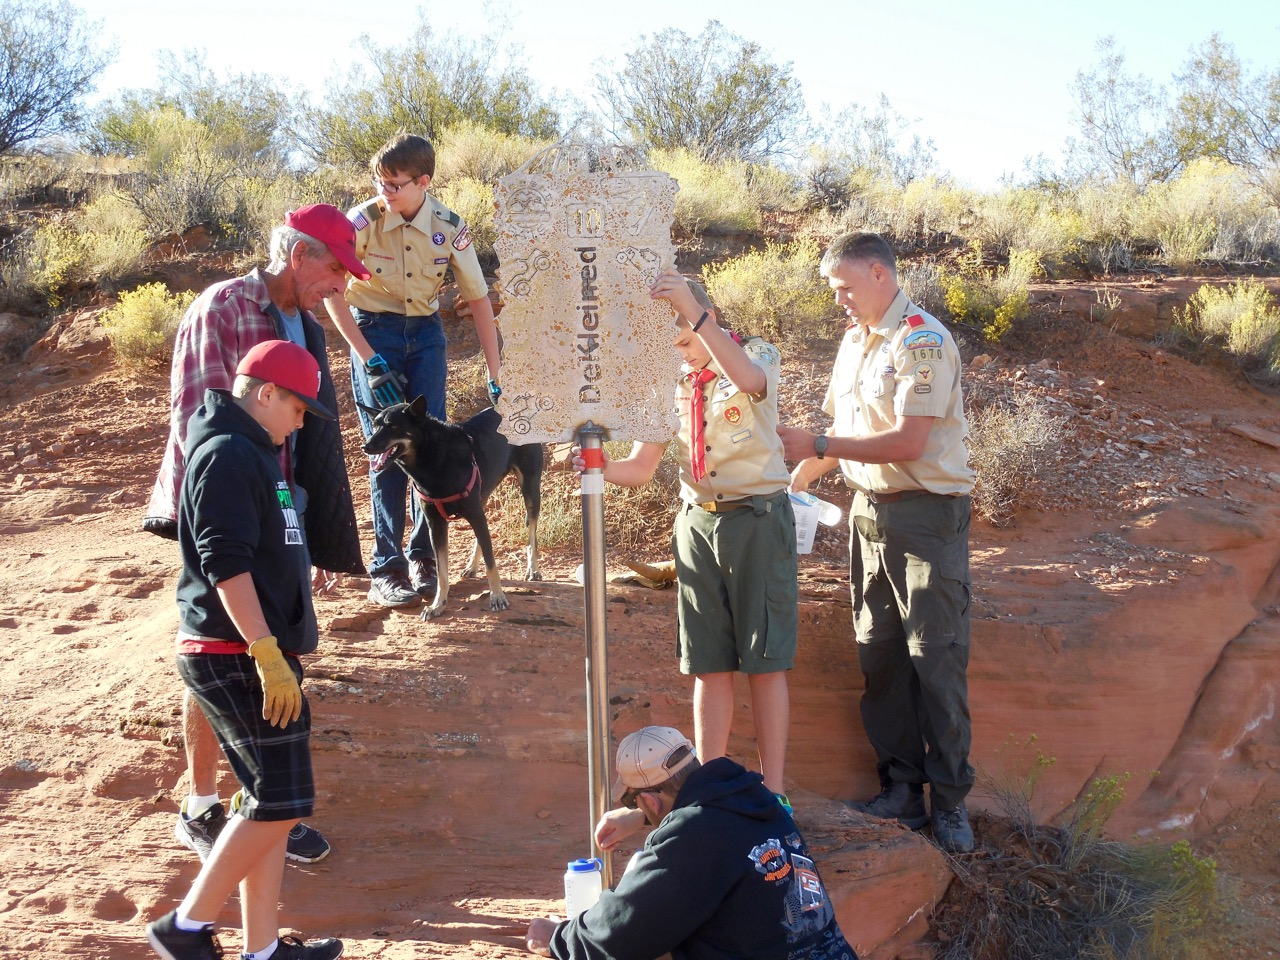 Boy scouts are among the volunteers for a National Public Lands Day project aiming to make Sand Mountain cleaner, safer and easier to navigate, Hurricane, Utah, Sept. 24, 2016   Photo courtesy of Desert Roads and Trails Society – Desert RATS, St. George News